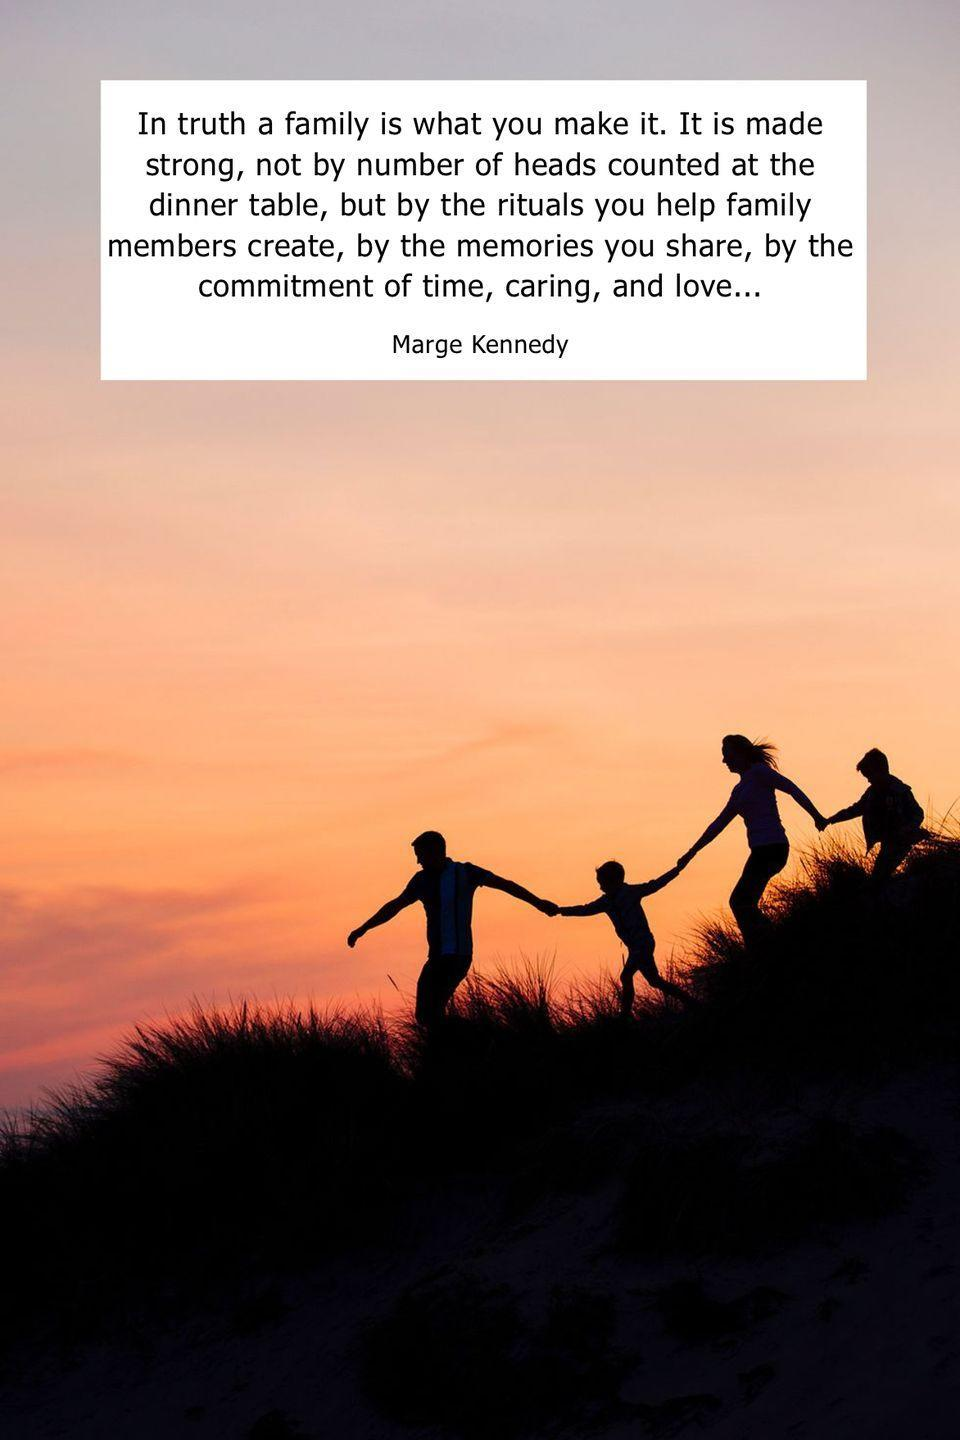 "<p>""In truth, a family is what you make it. It is made strong, not by number of heads counted at the dinner table, but by the rituals you help family members create, by the memories you share, by the commitment of time, caring, and love...""</p>"